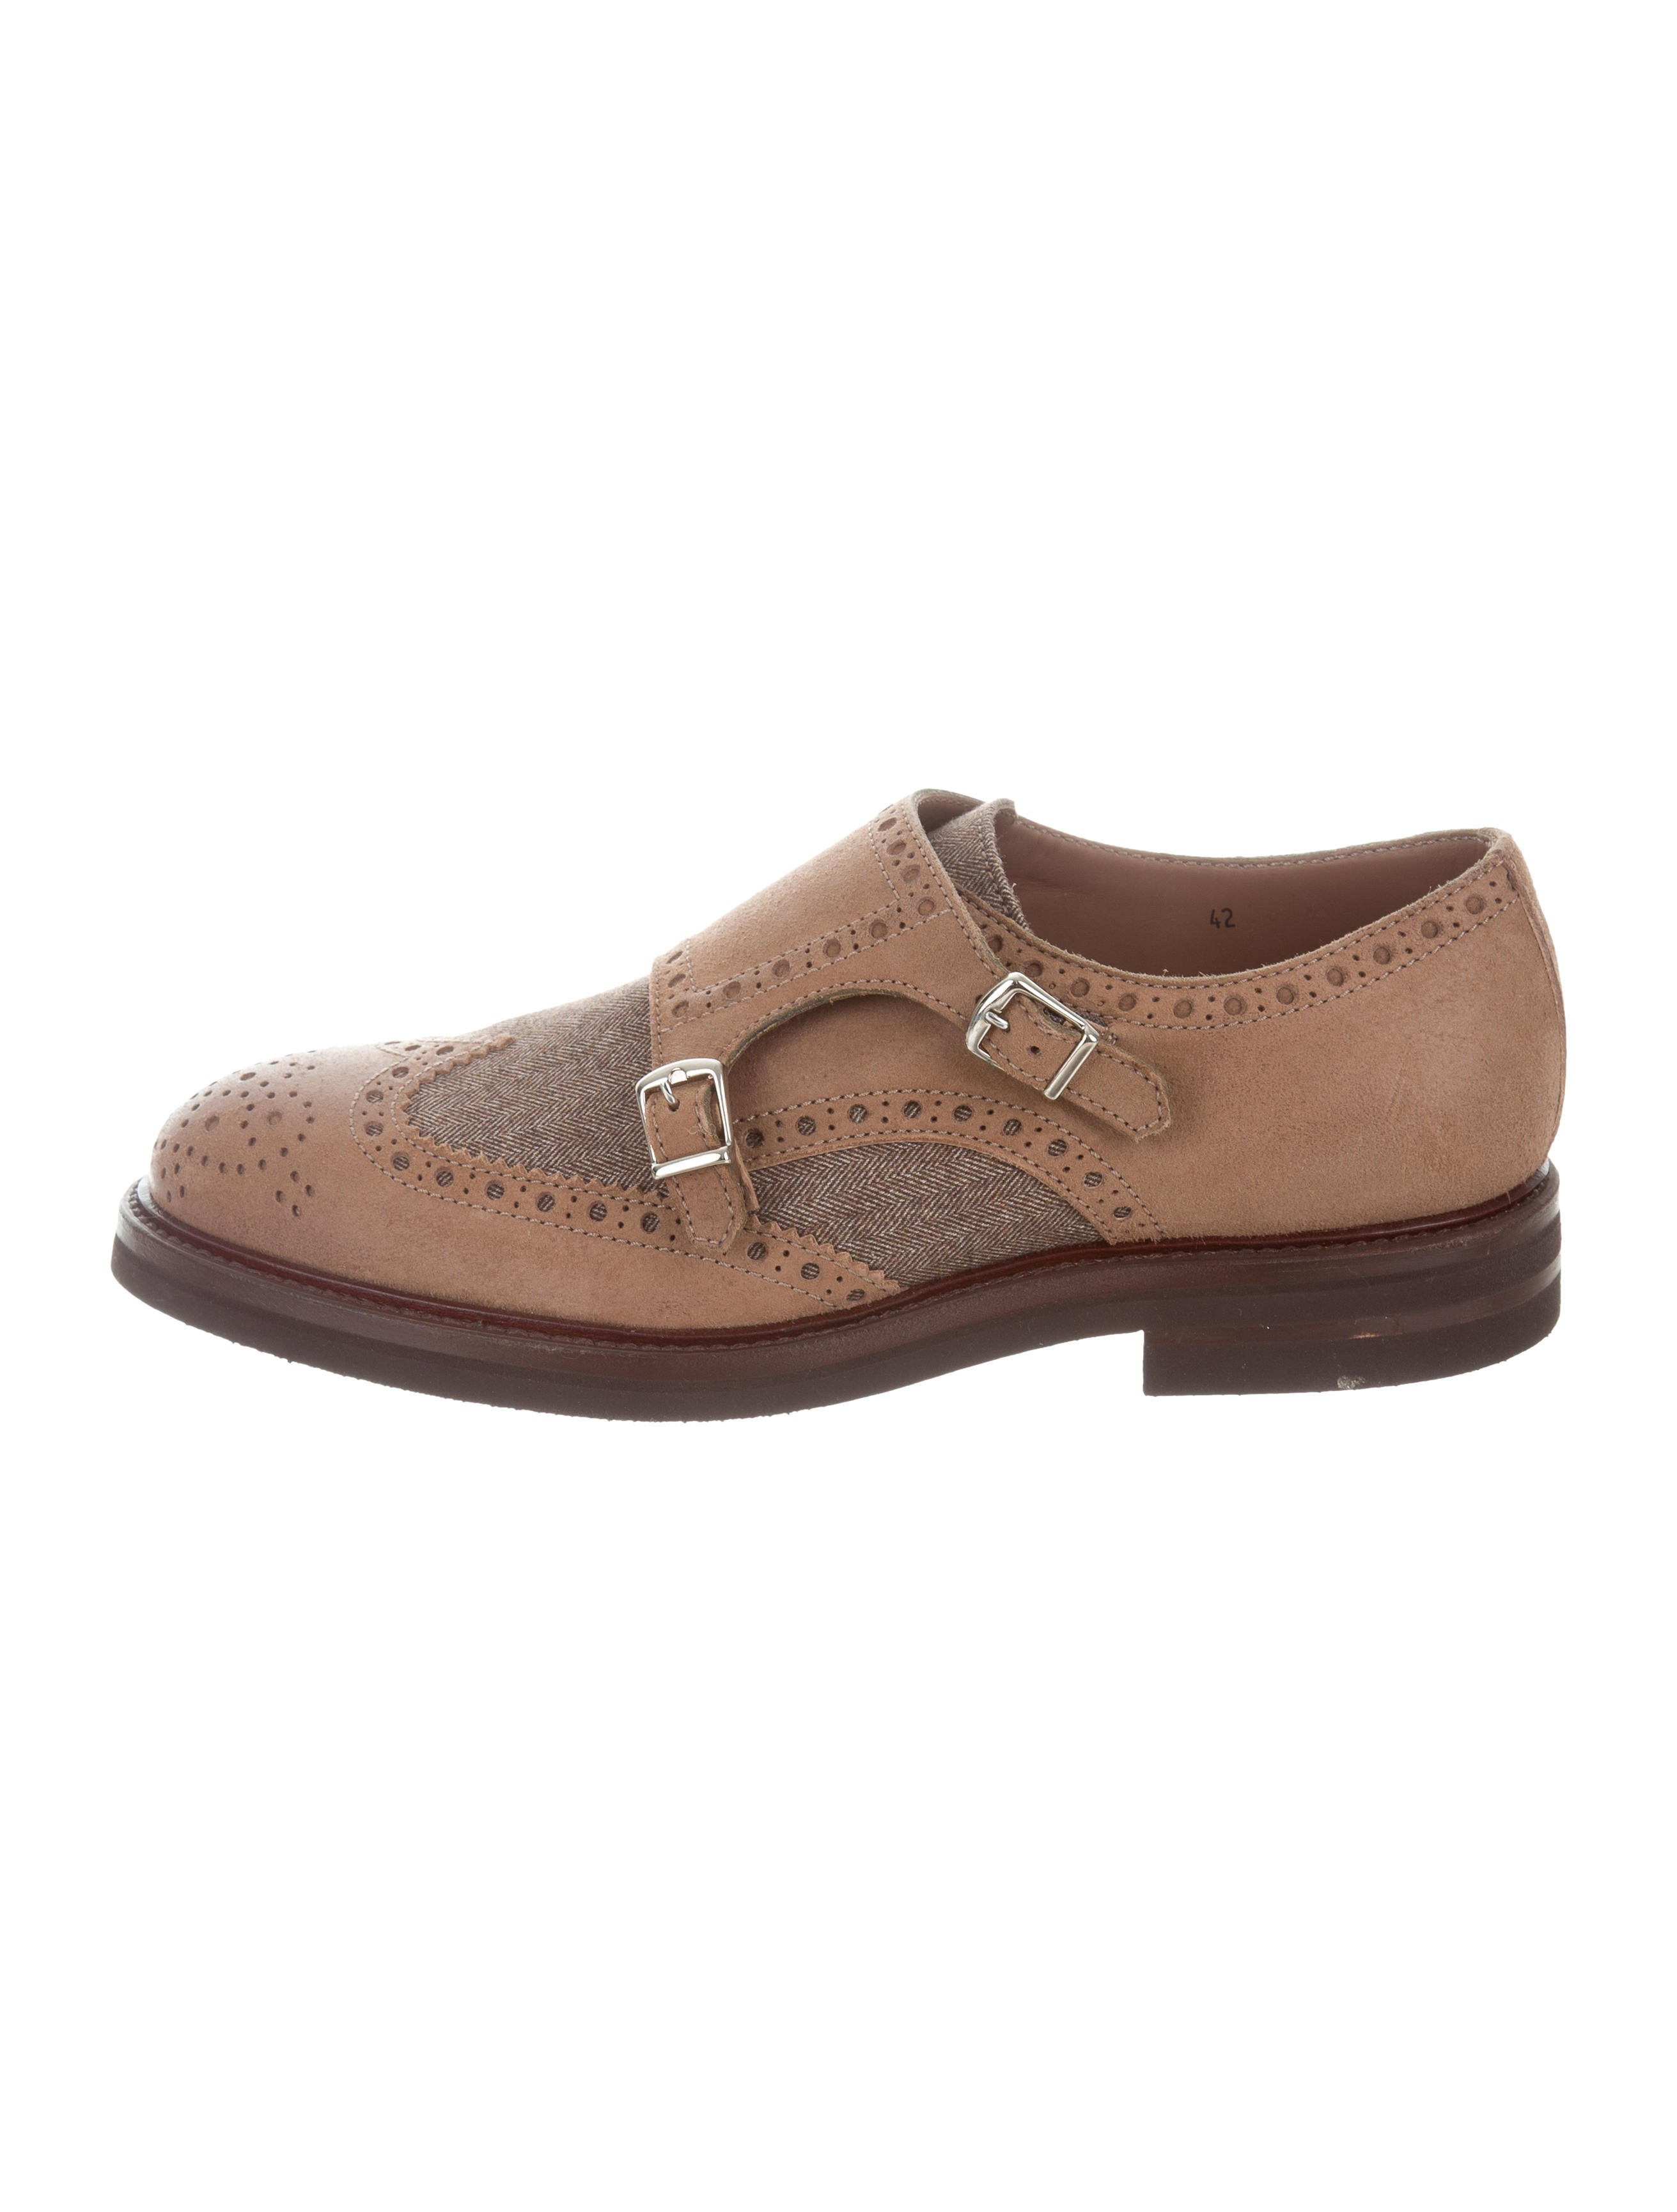 Men's monk shoes are a classic shoe closed by decorative metal buckles. They are single strap monks with only one leather strap and a buckle and the double strap monks with two straps and buckles. They are single strap monks with only one leather strap and a buckle and the double strap monks with two straps and buckles.